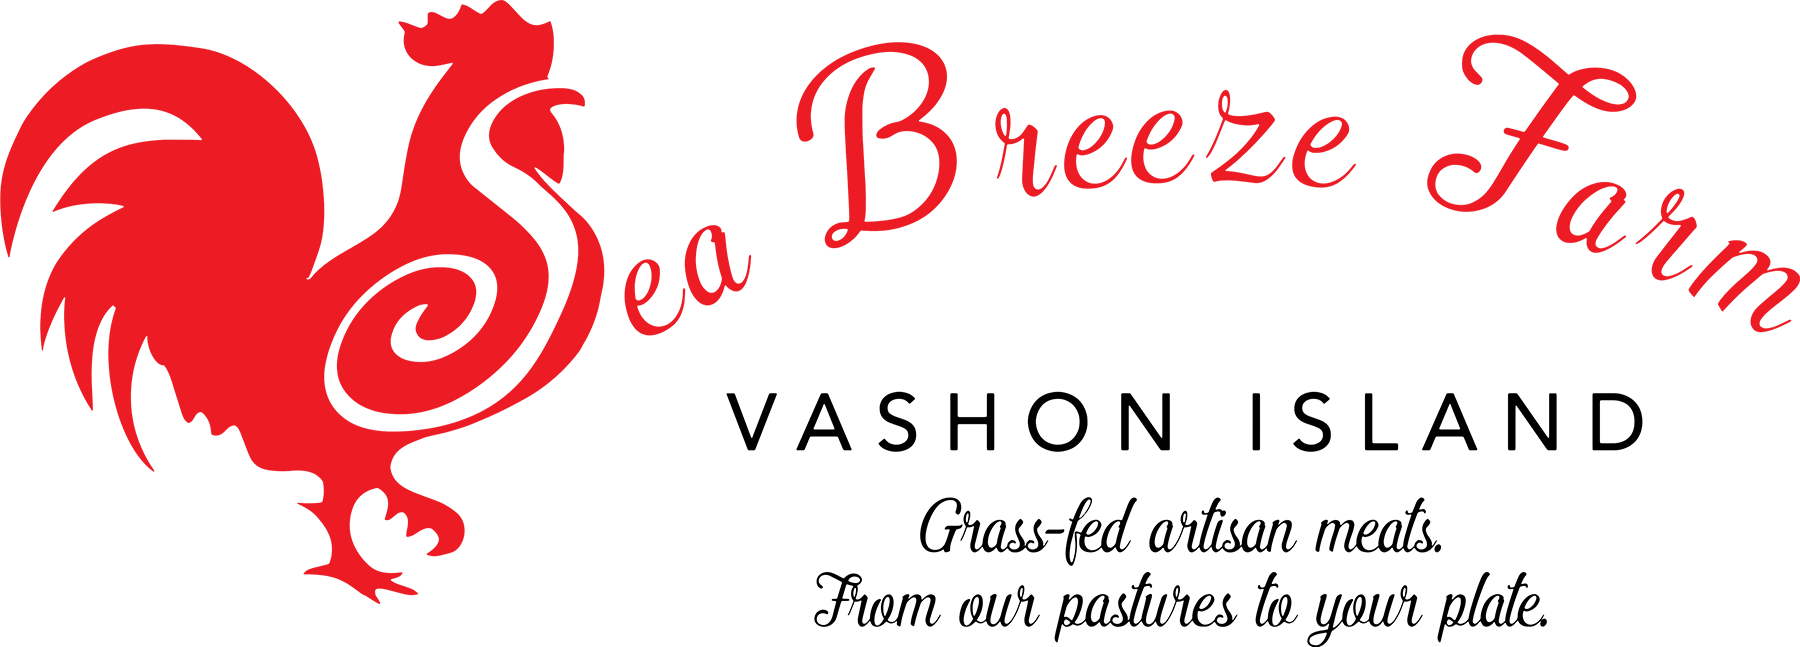 Sea Breeze Farm Logo